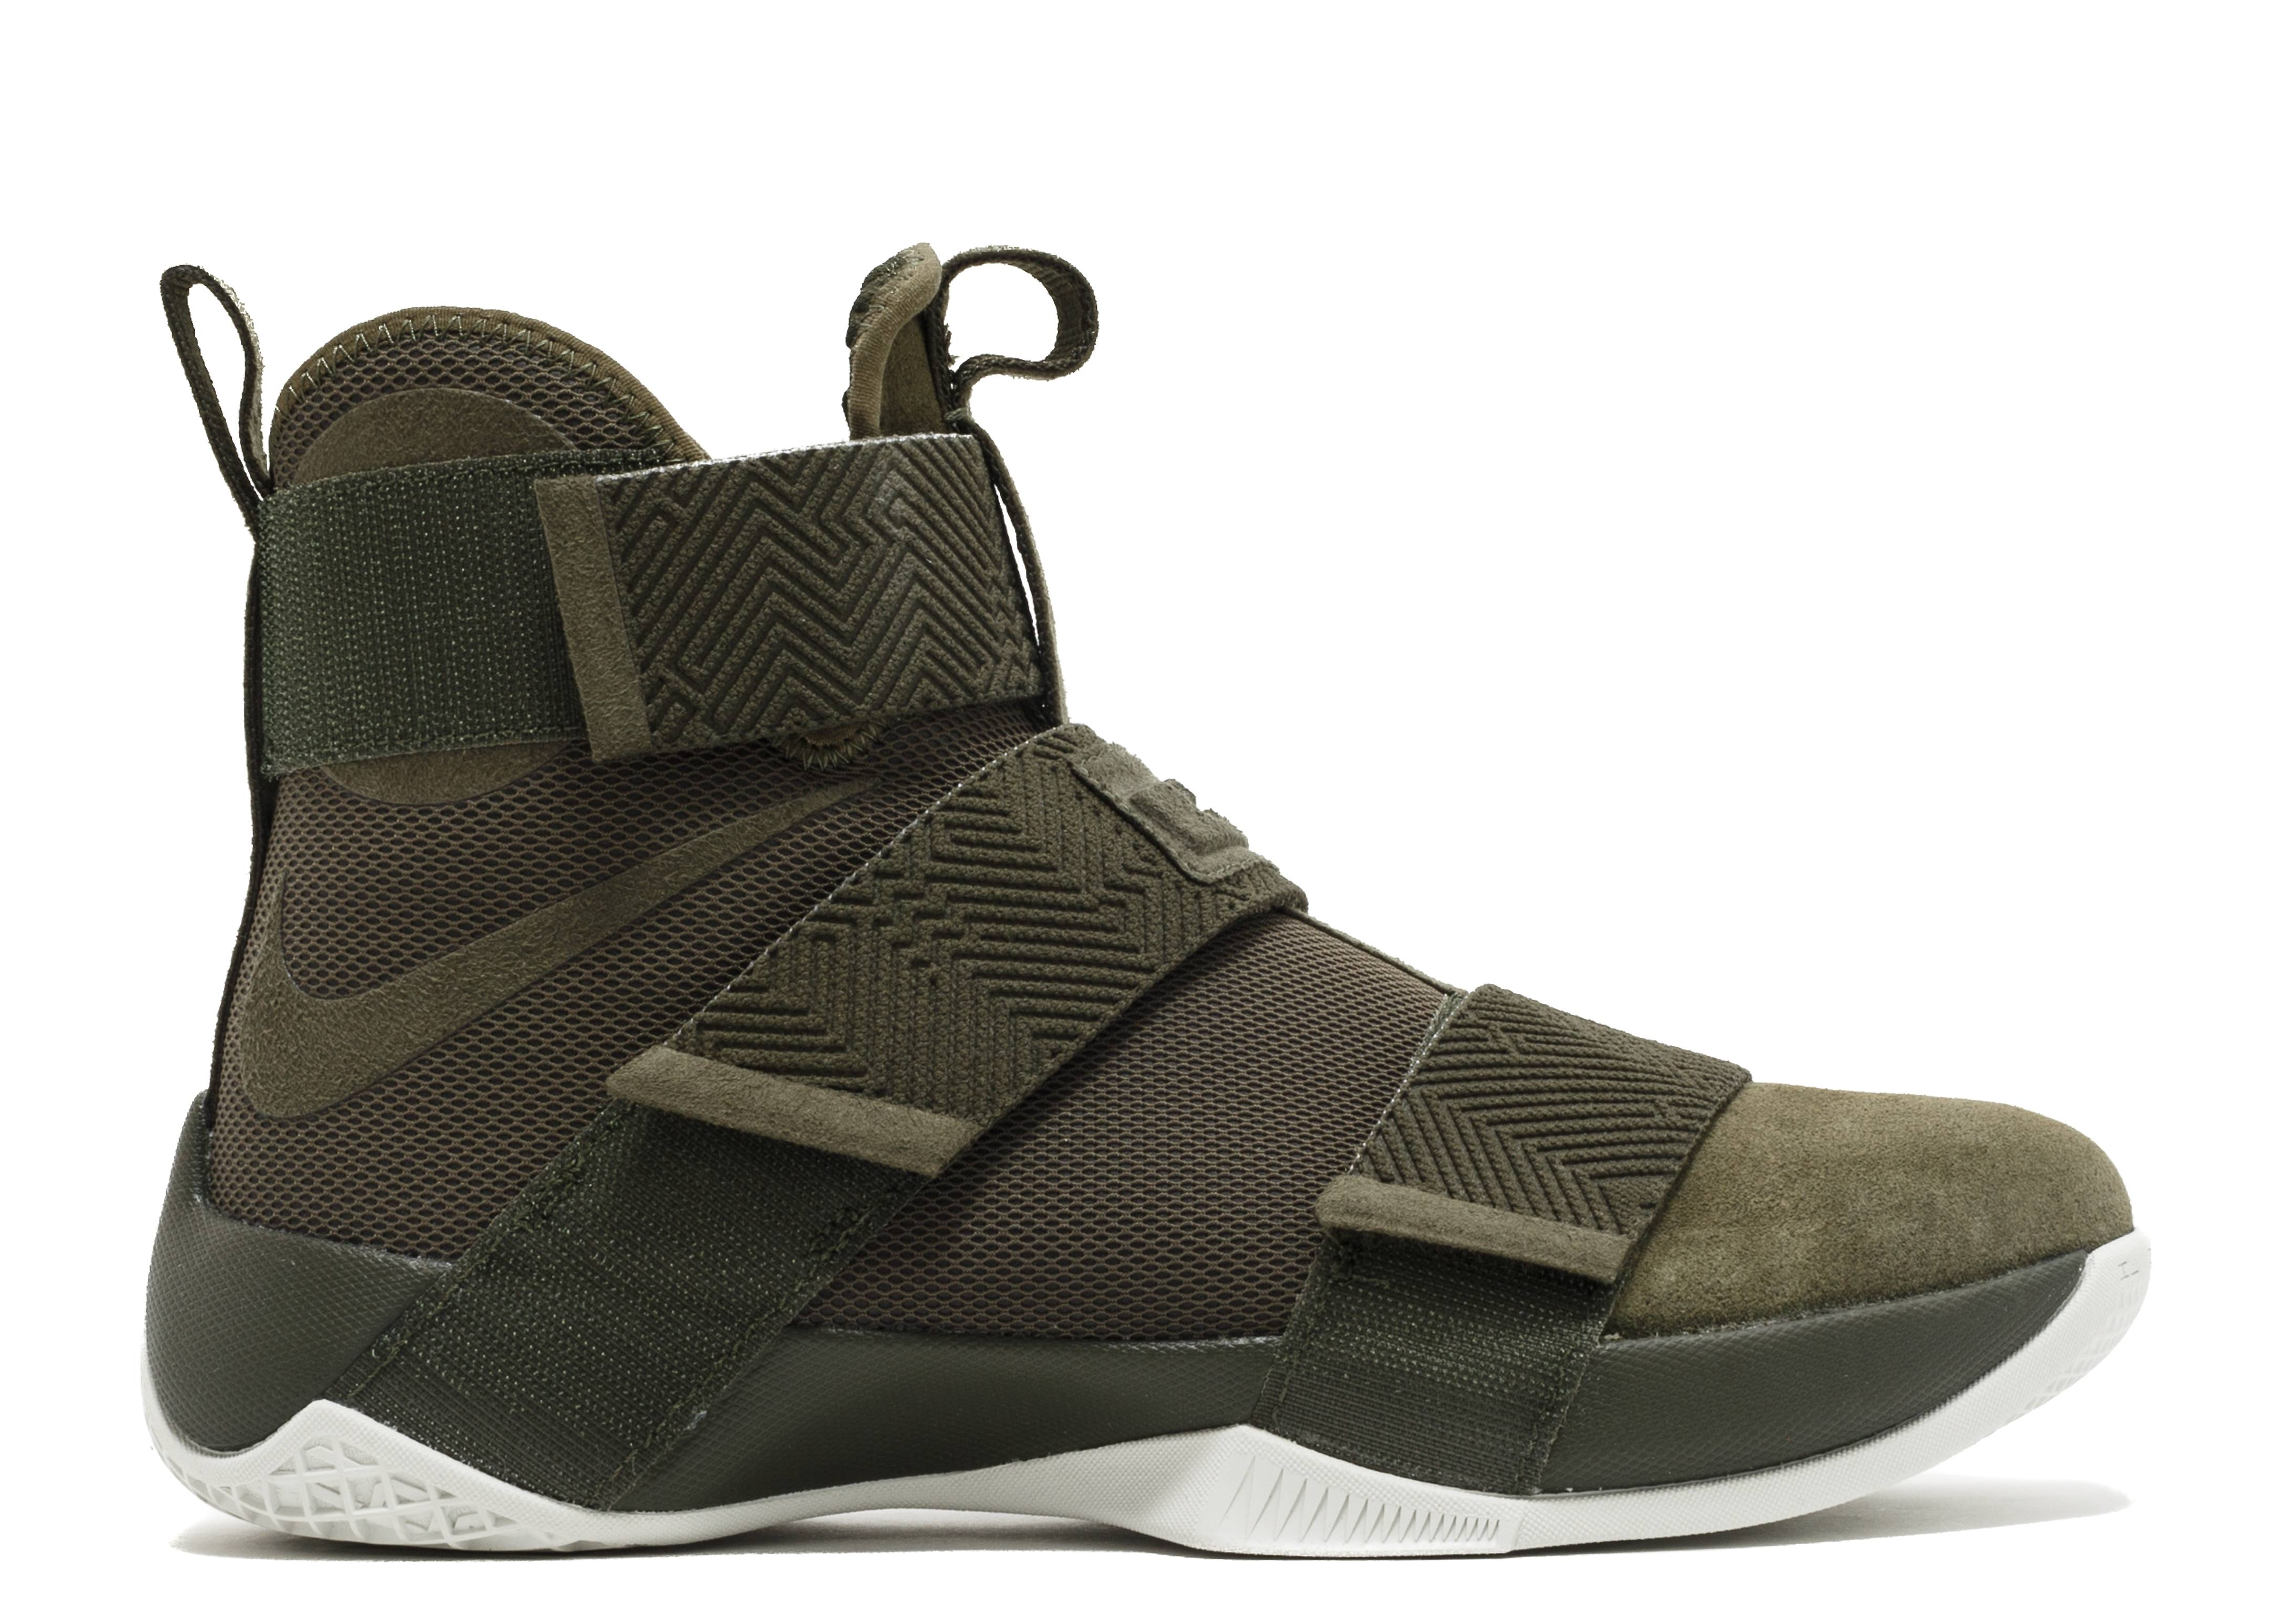 new style 7039a dc1b0 nike. lebron soldier 10 sfg